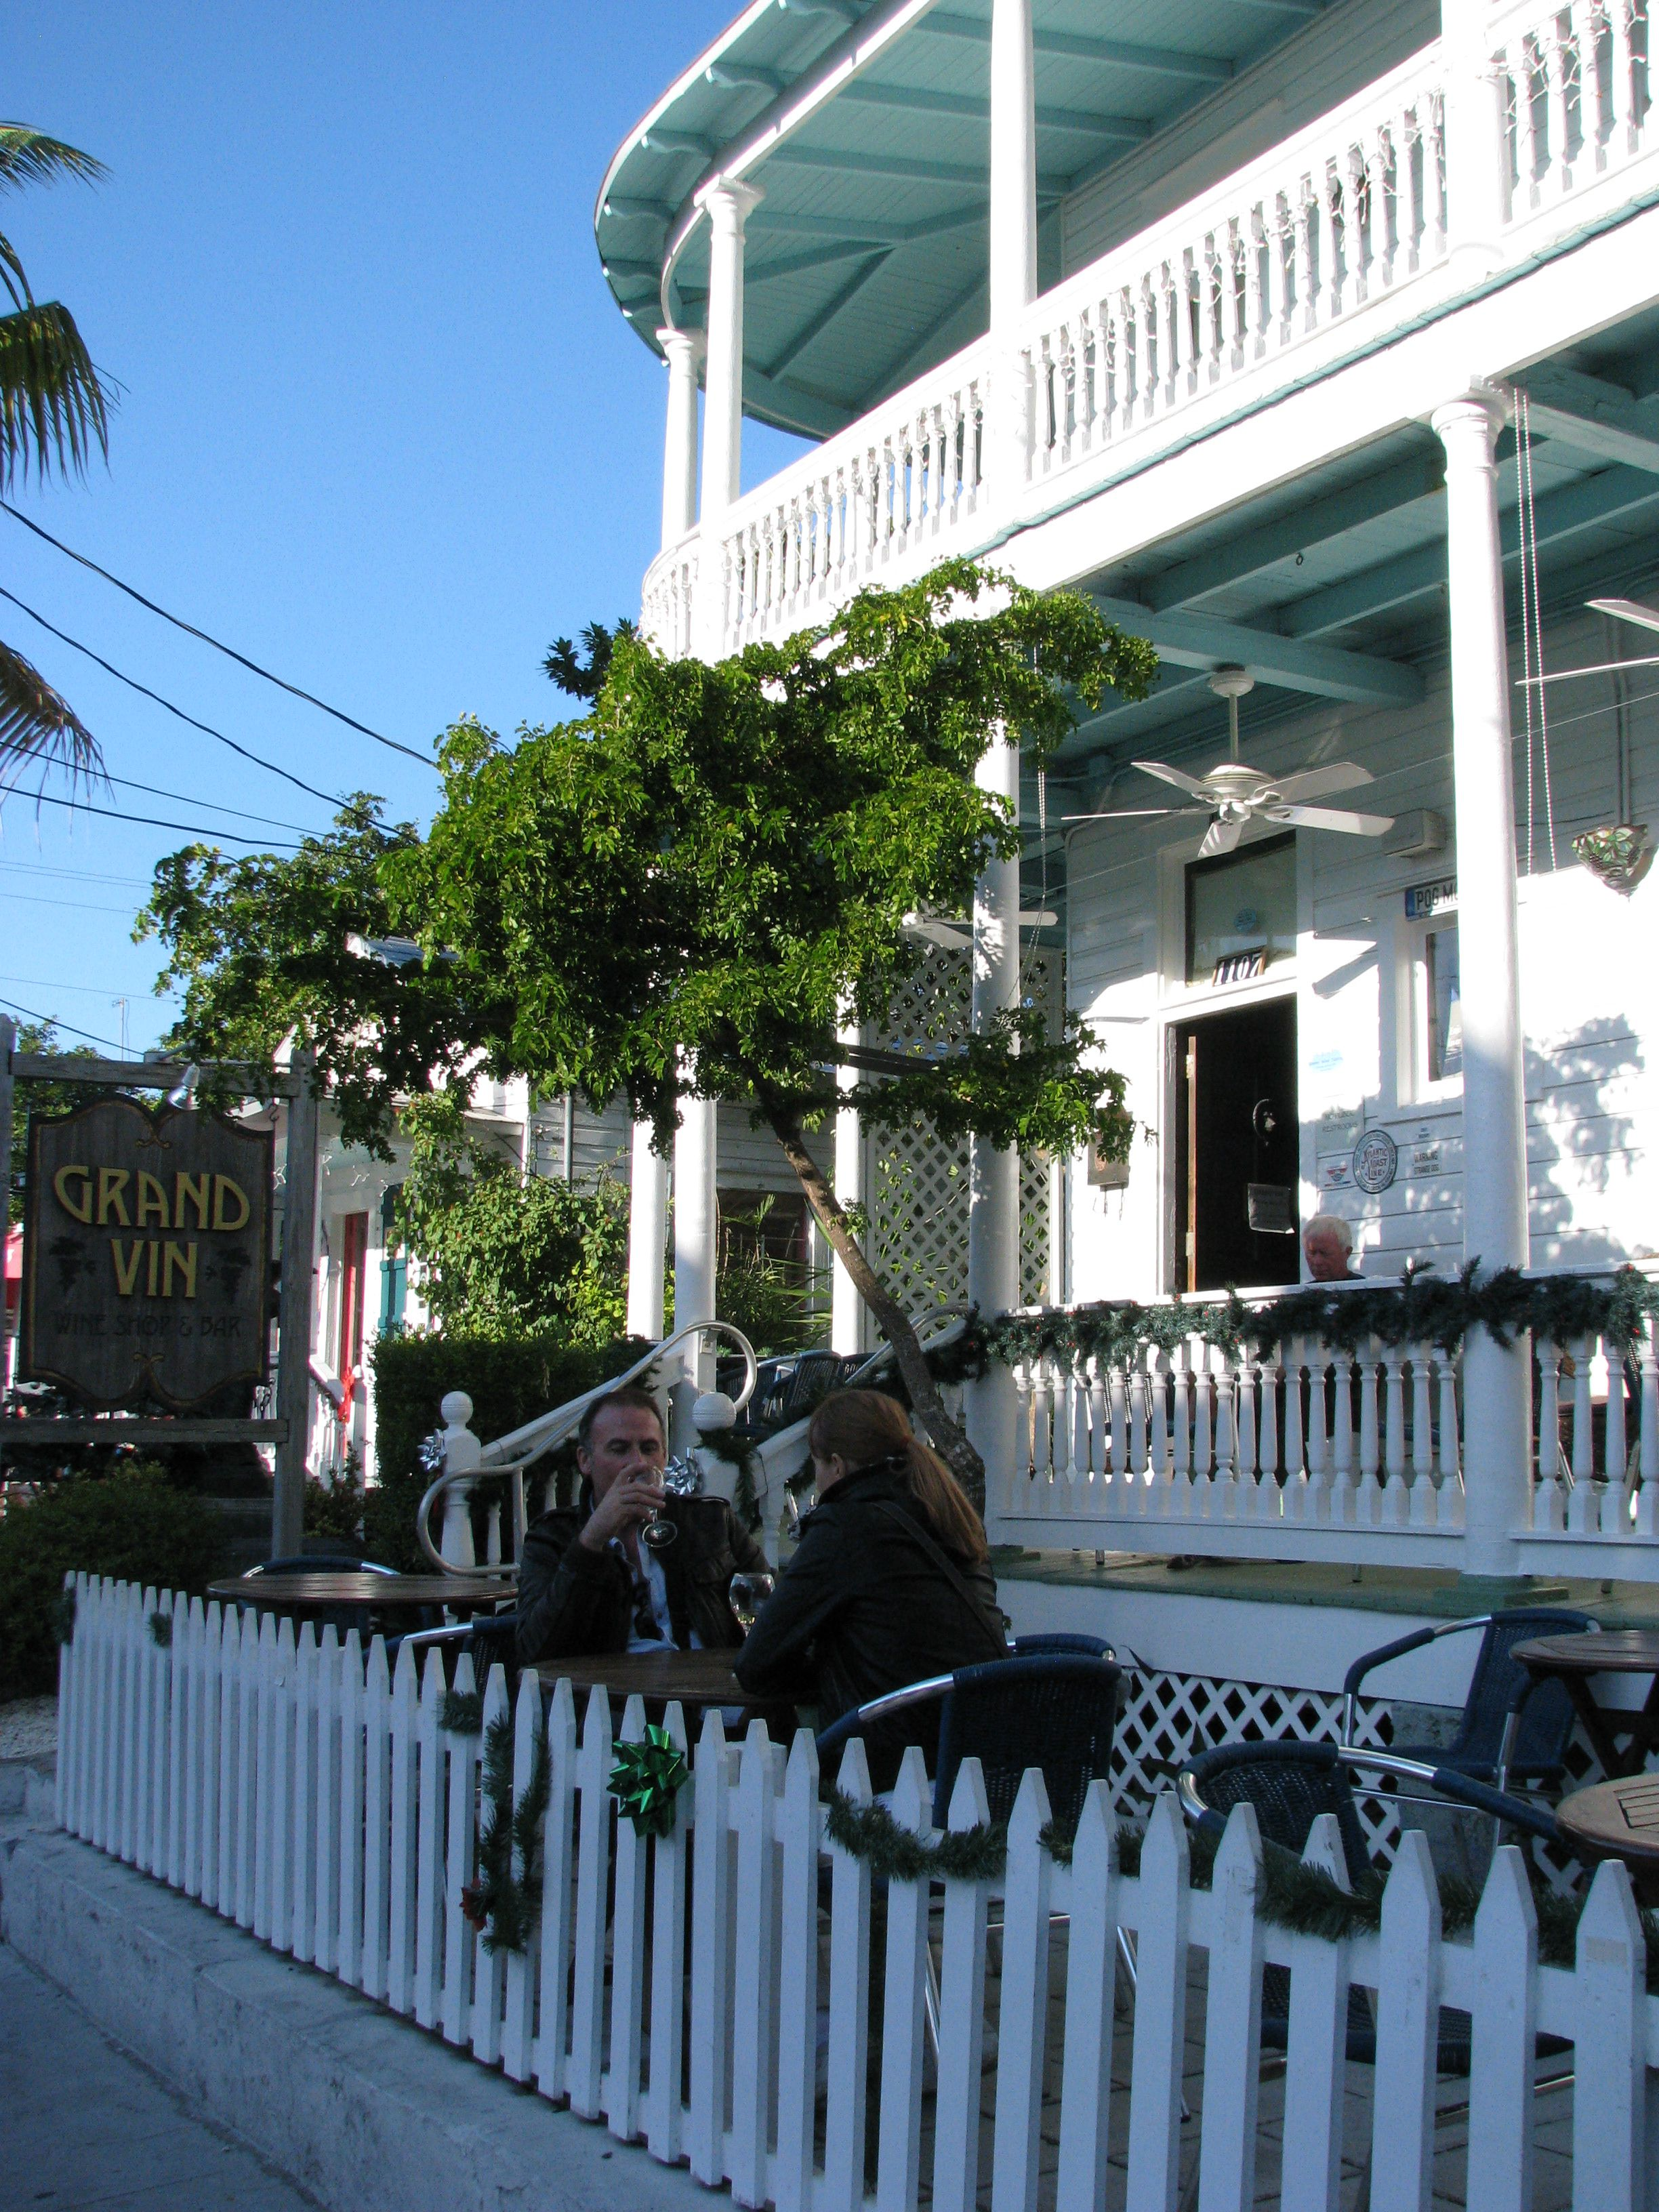 Key West Gay Bars Nightlife and Restaurants Guide